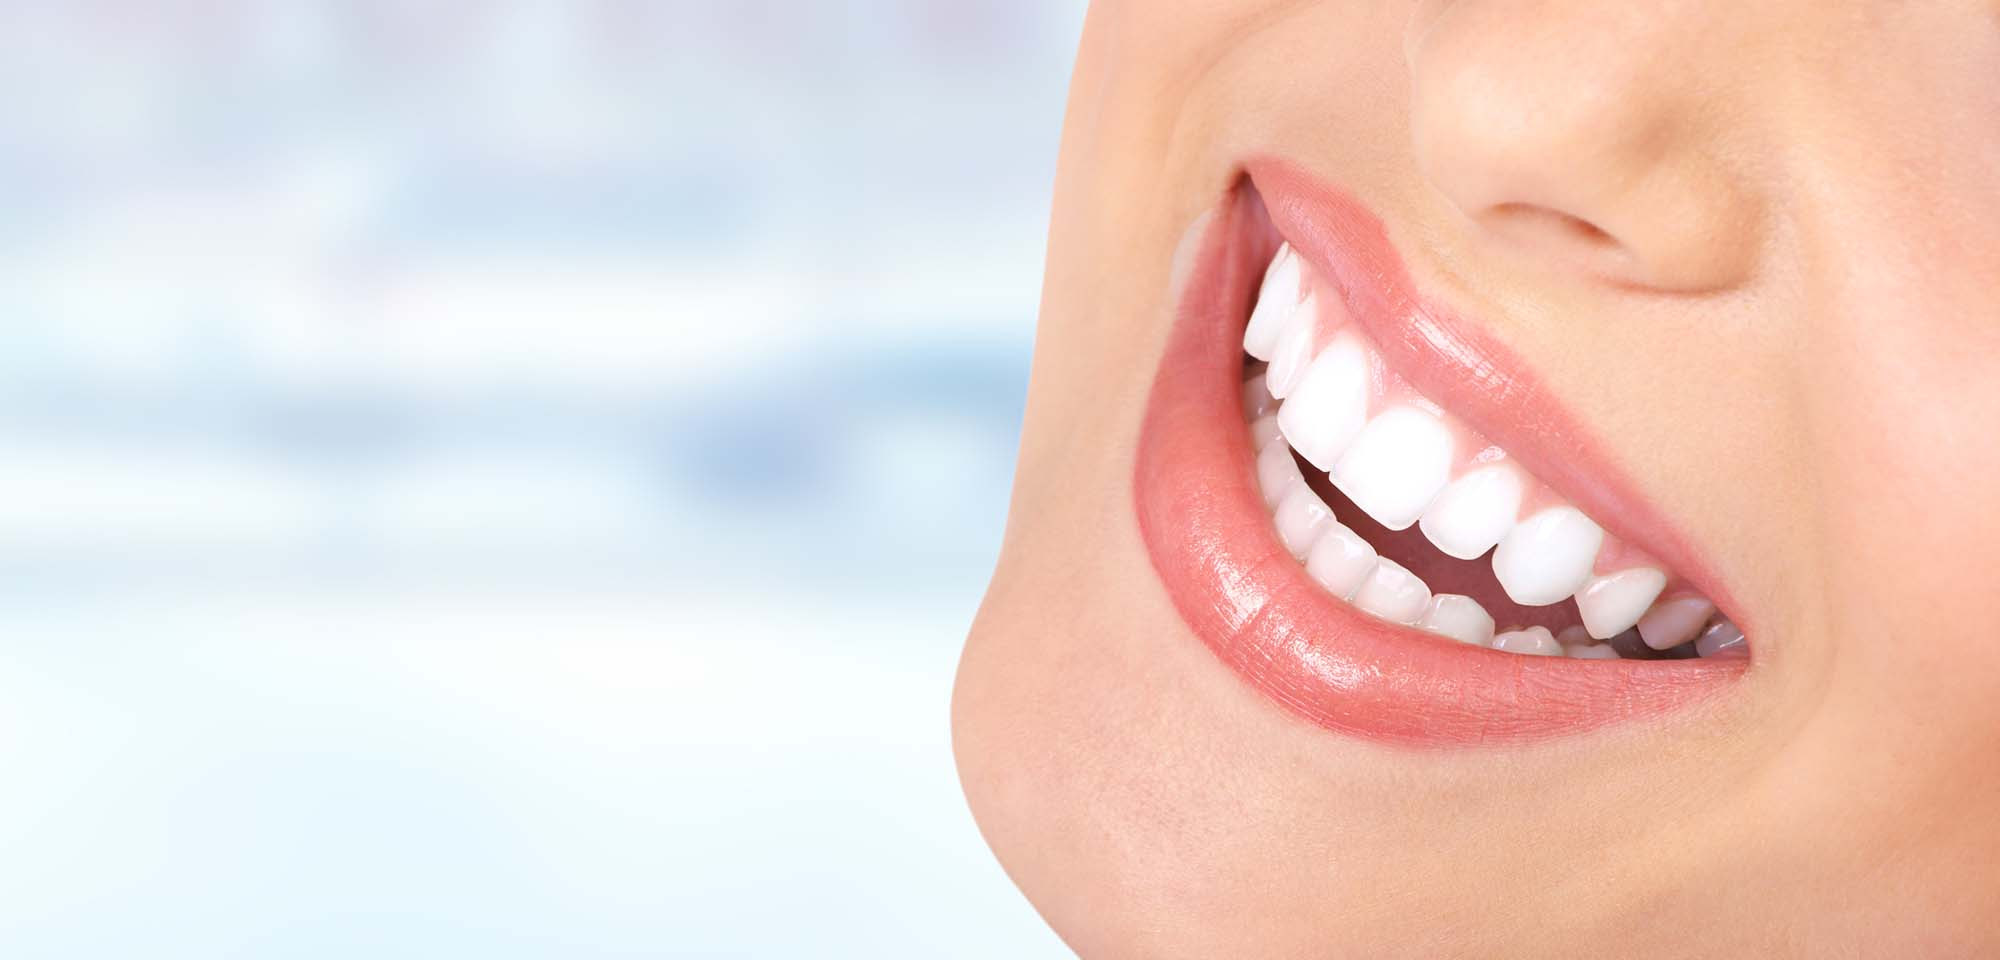 Beautiful young woman smile close-up. Dental health care